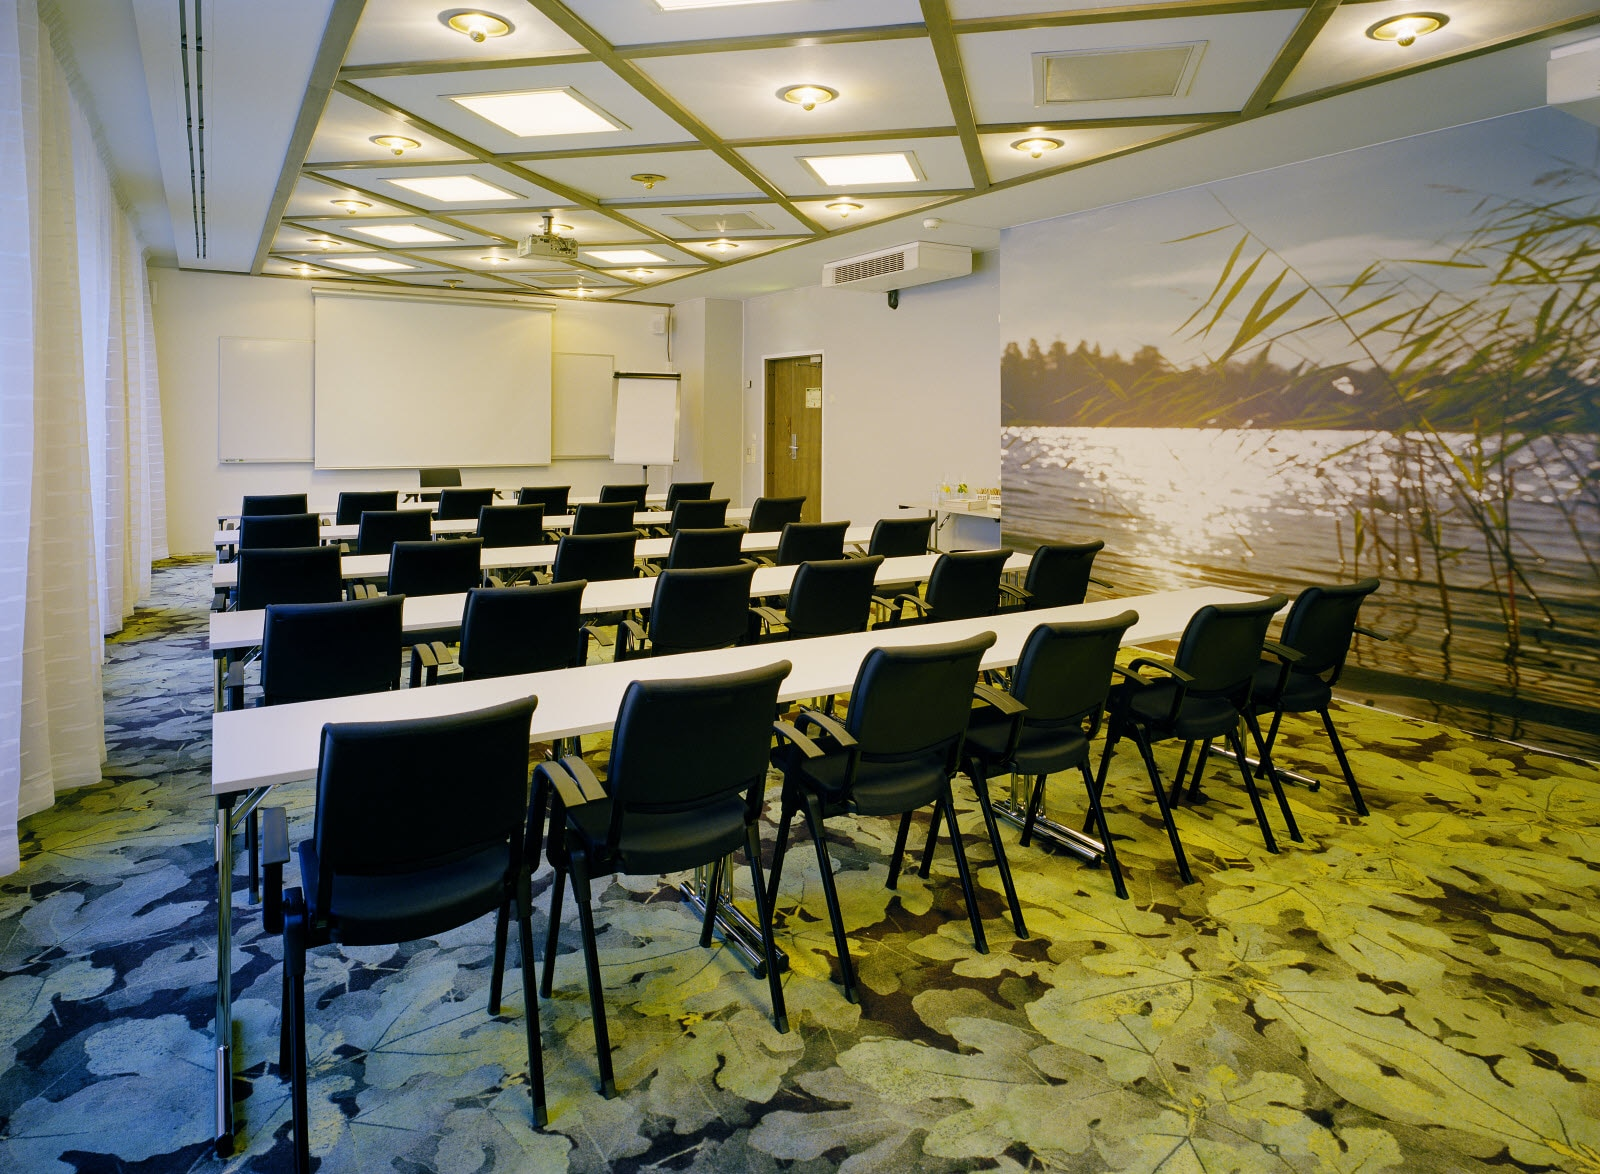 Scandic Frimurarehotellet, conference, meeting, room